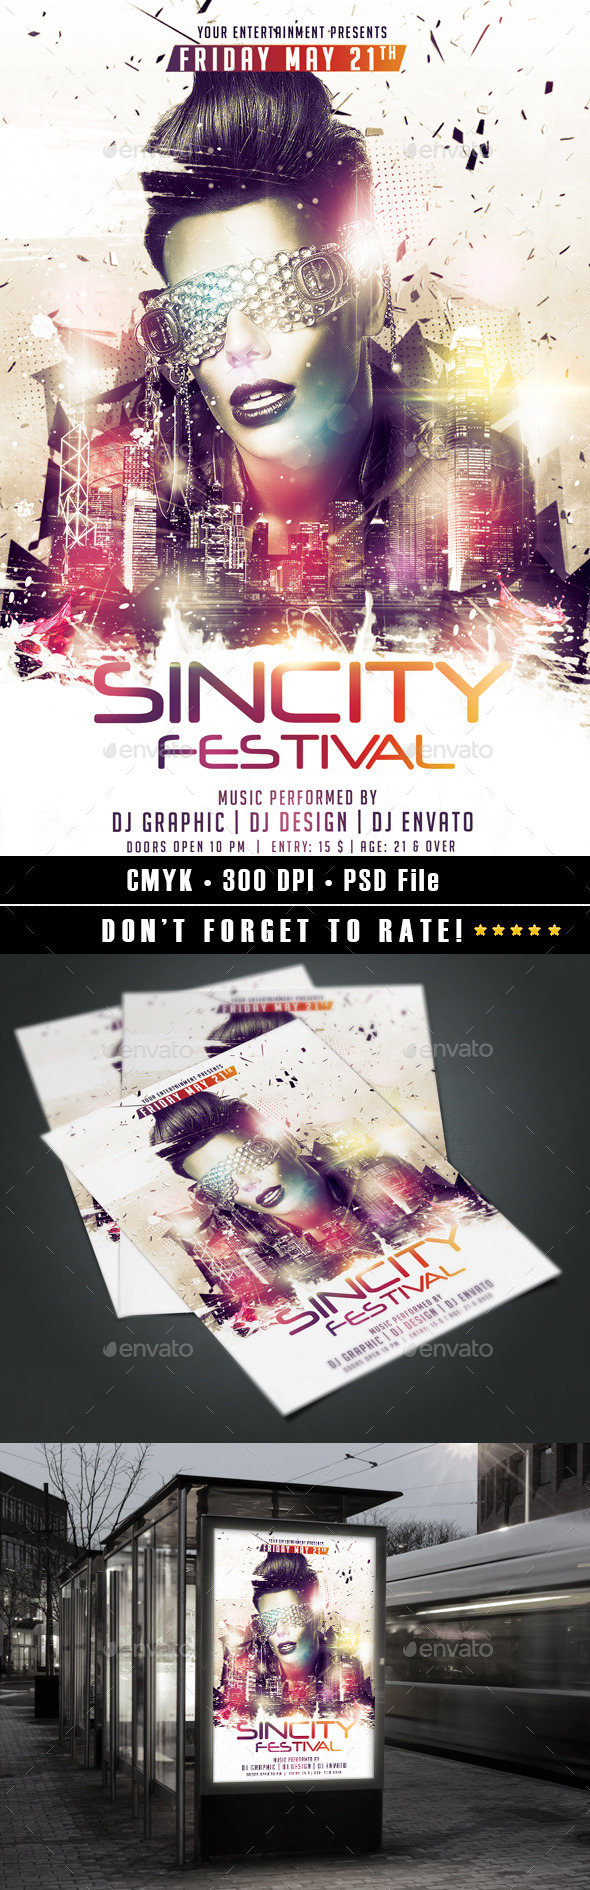 Sincity Festival - Events Flyers